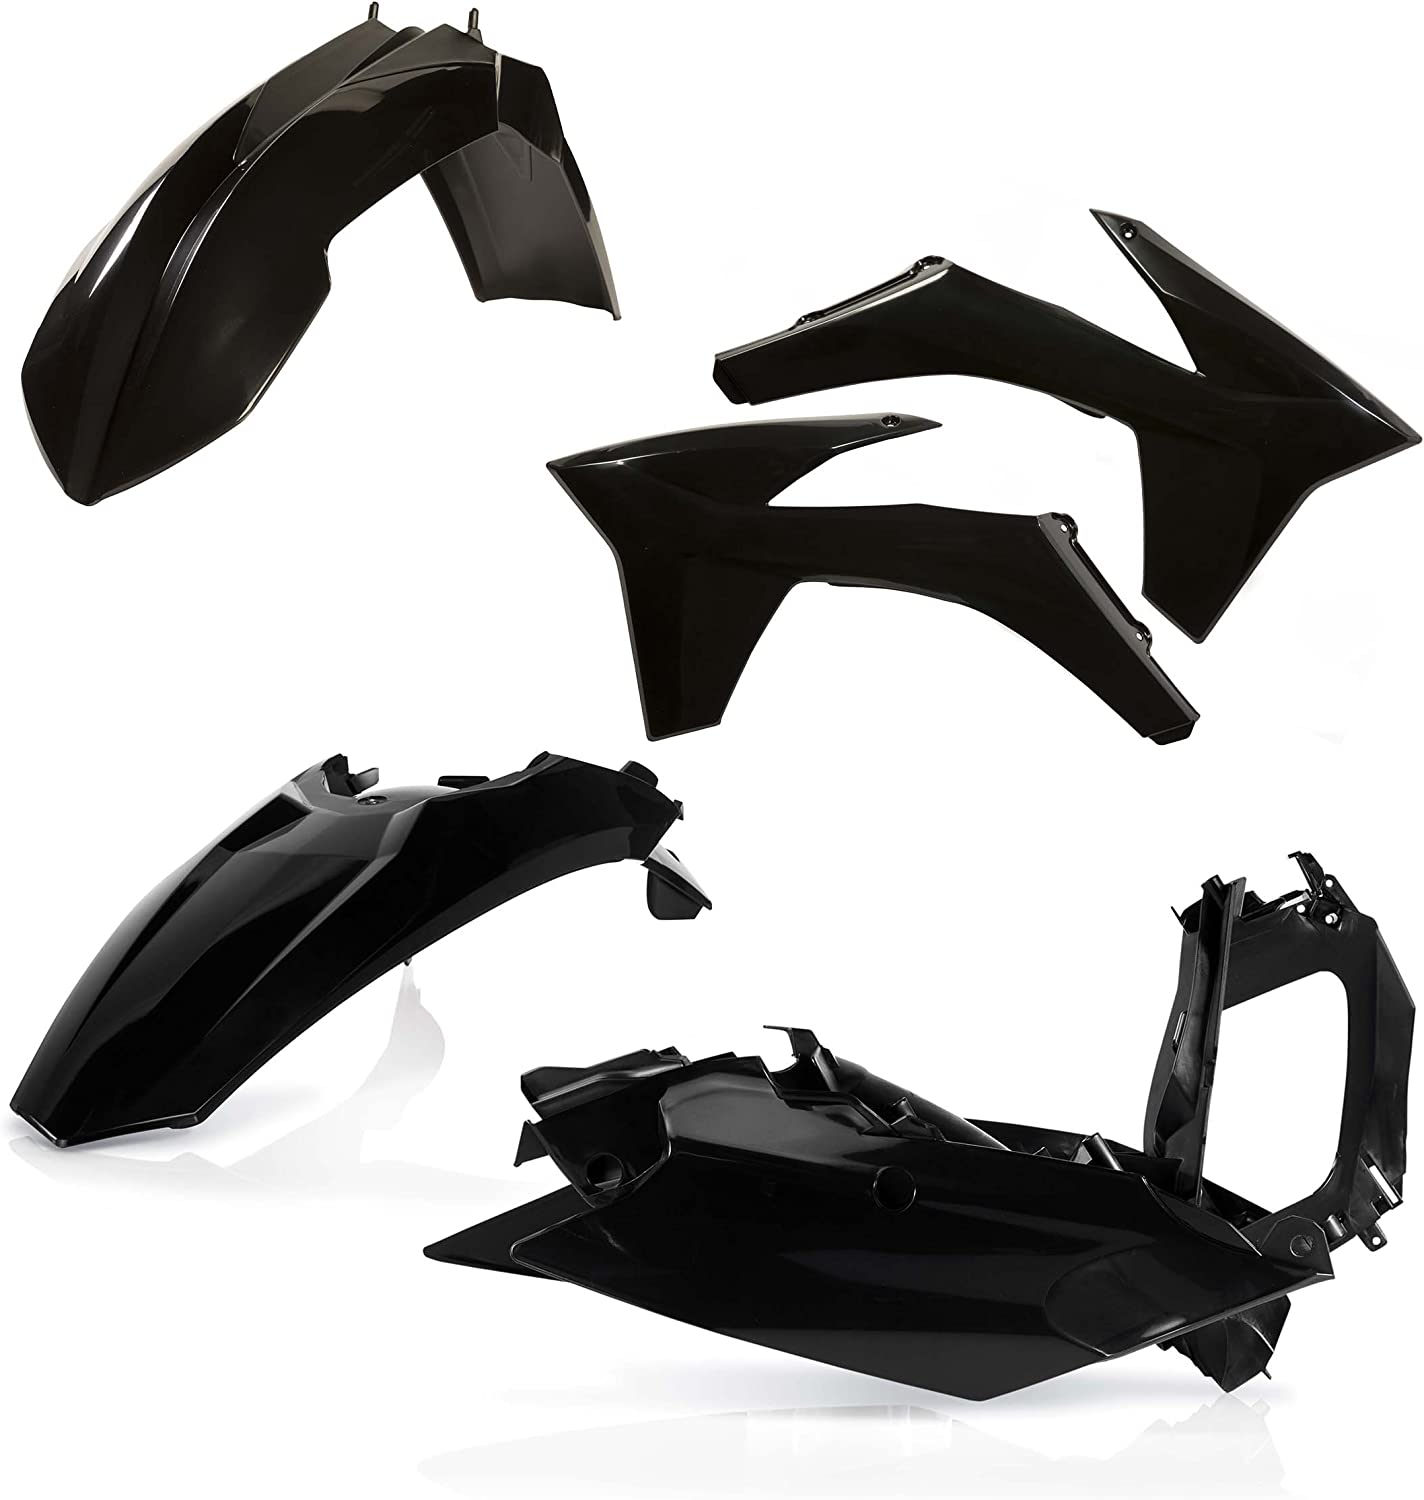 Acerbis Plastic Kit Black for 08-17 Suzuki RMZ450